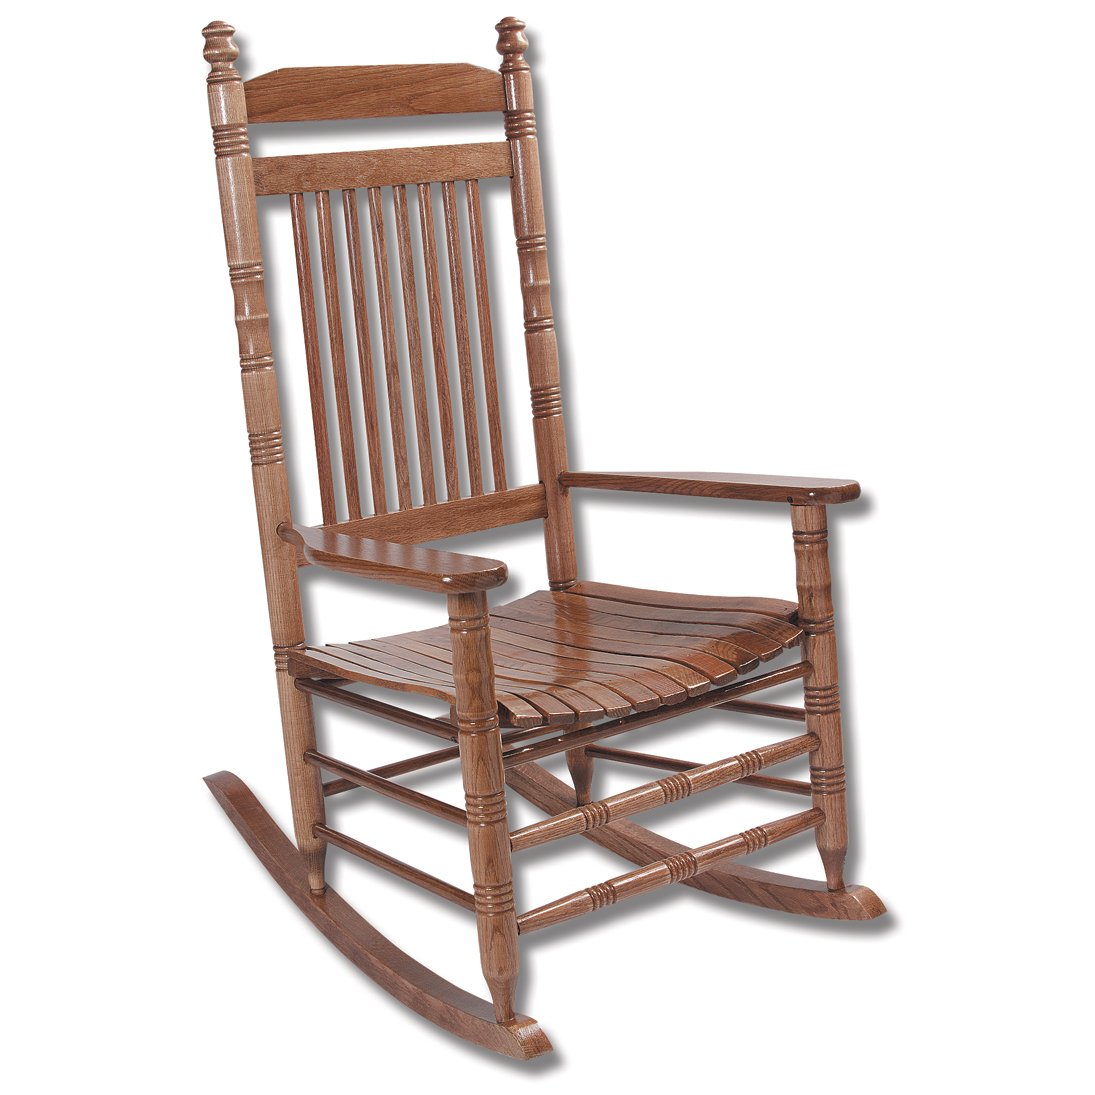 hardwood slat rocking chair fully